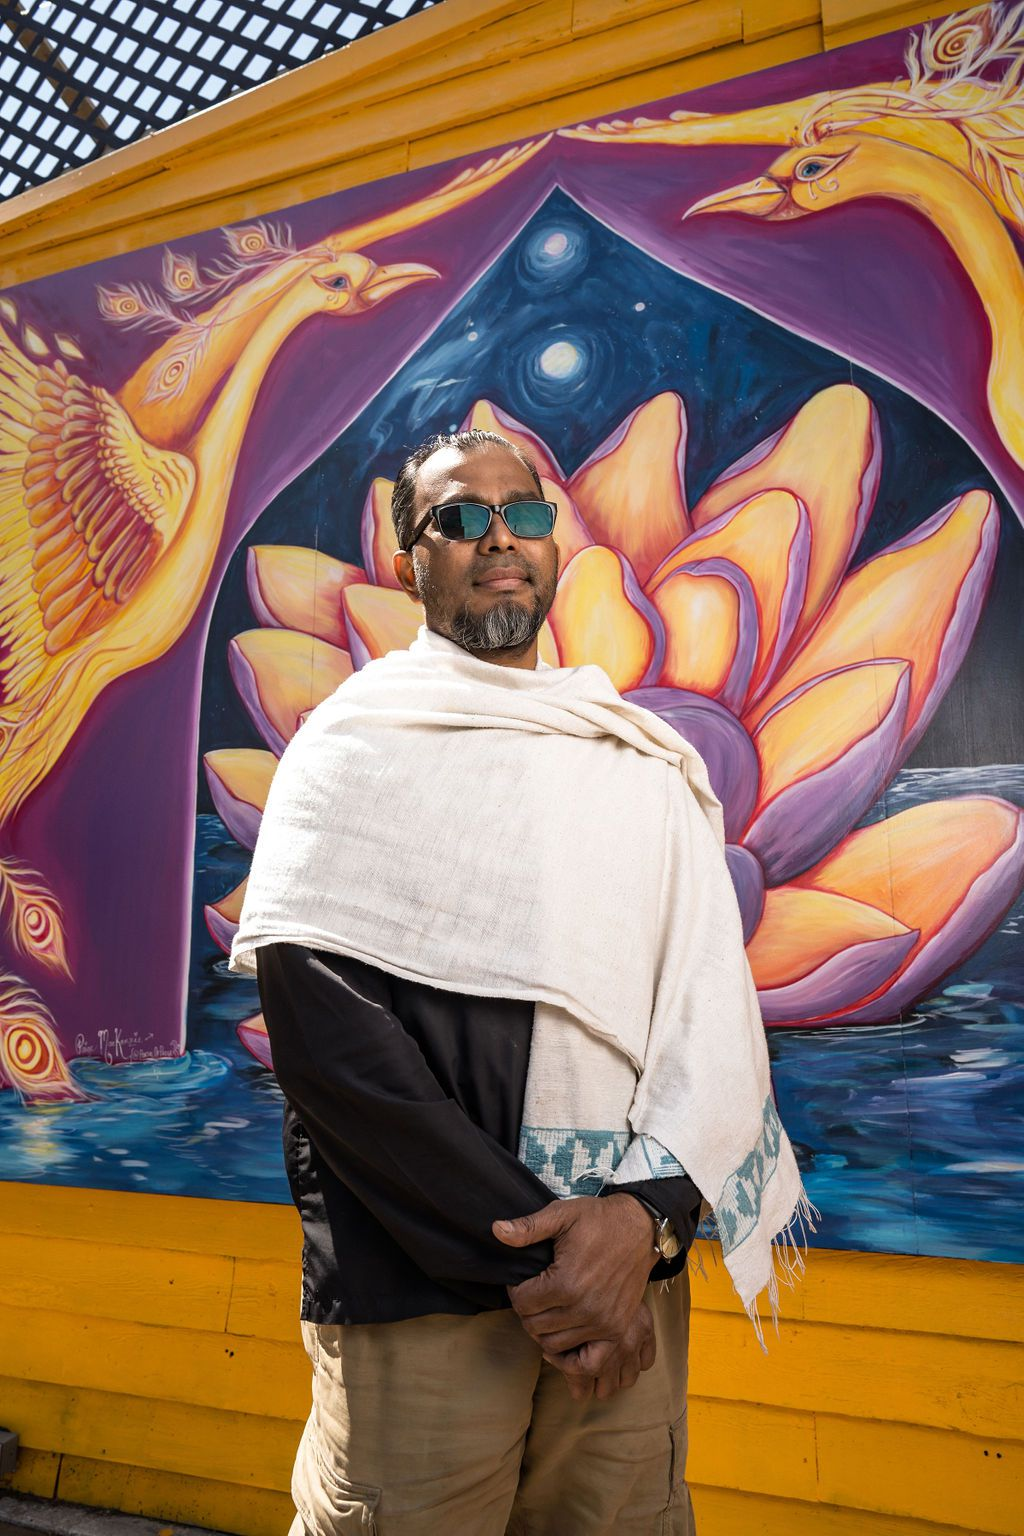 Man wearing sunglasses standing in front of a colorful mural.